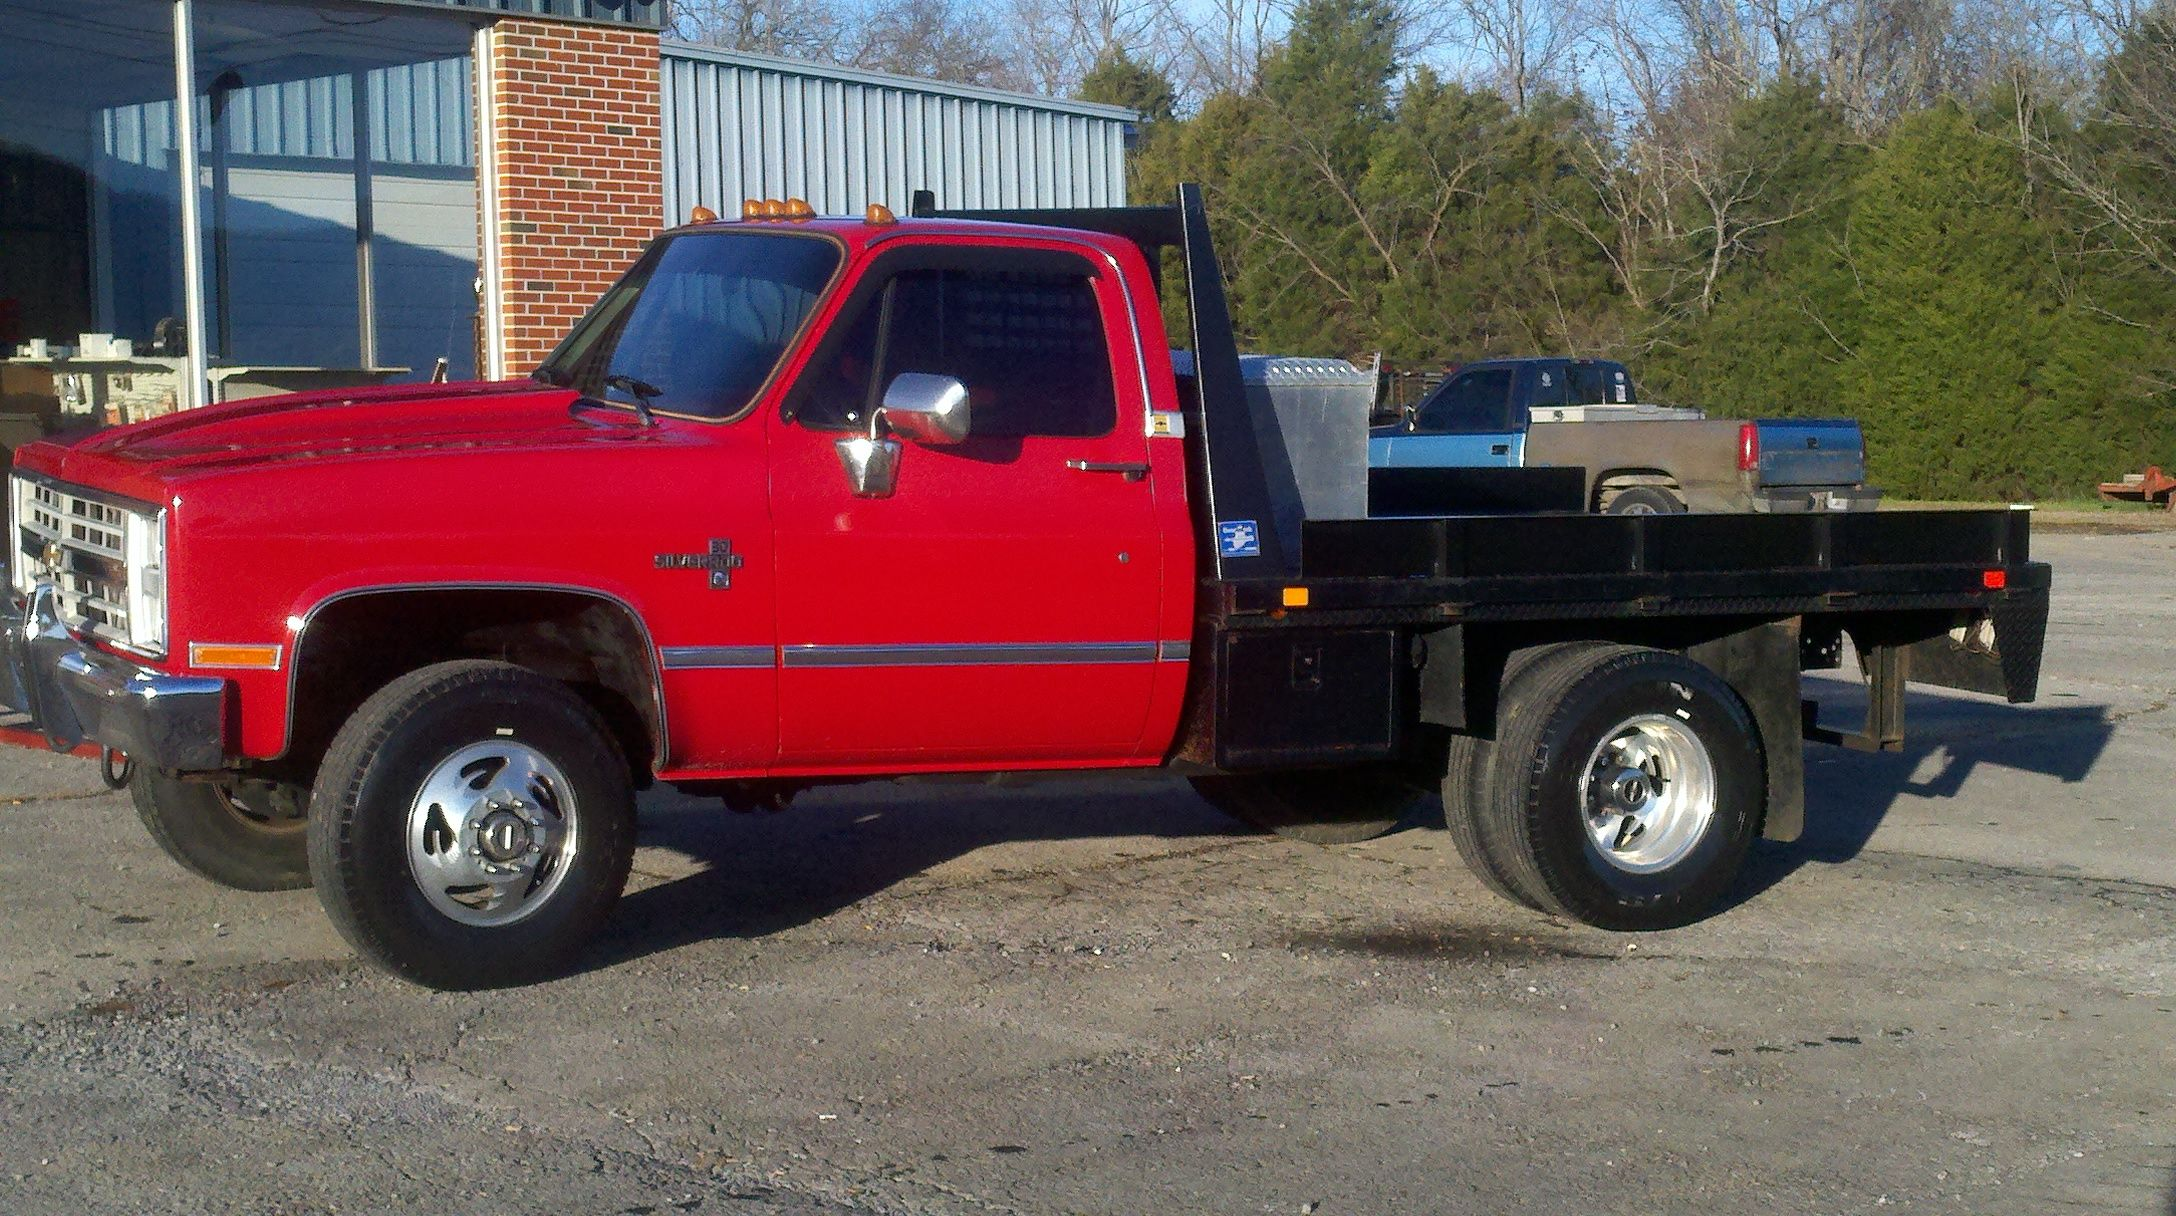 86 Chevy Flatbed Chevy trucks, Chevy, Flatbed truck beds